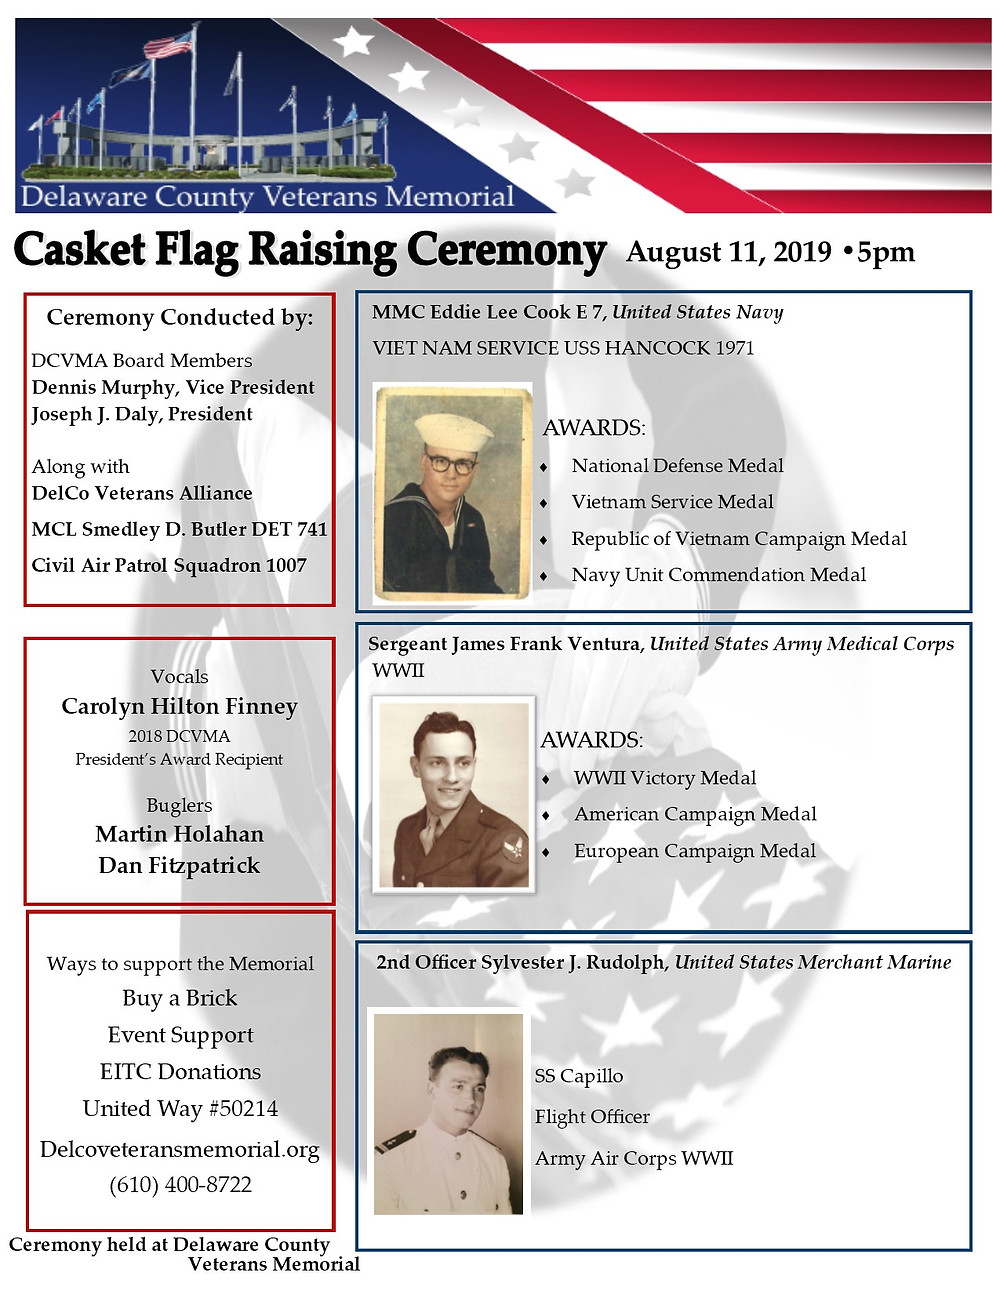 On August 11, 2019, The DCVM honored three Veterans in our Casket Flag Raising Ceremony.